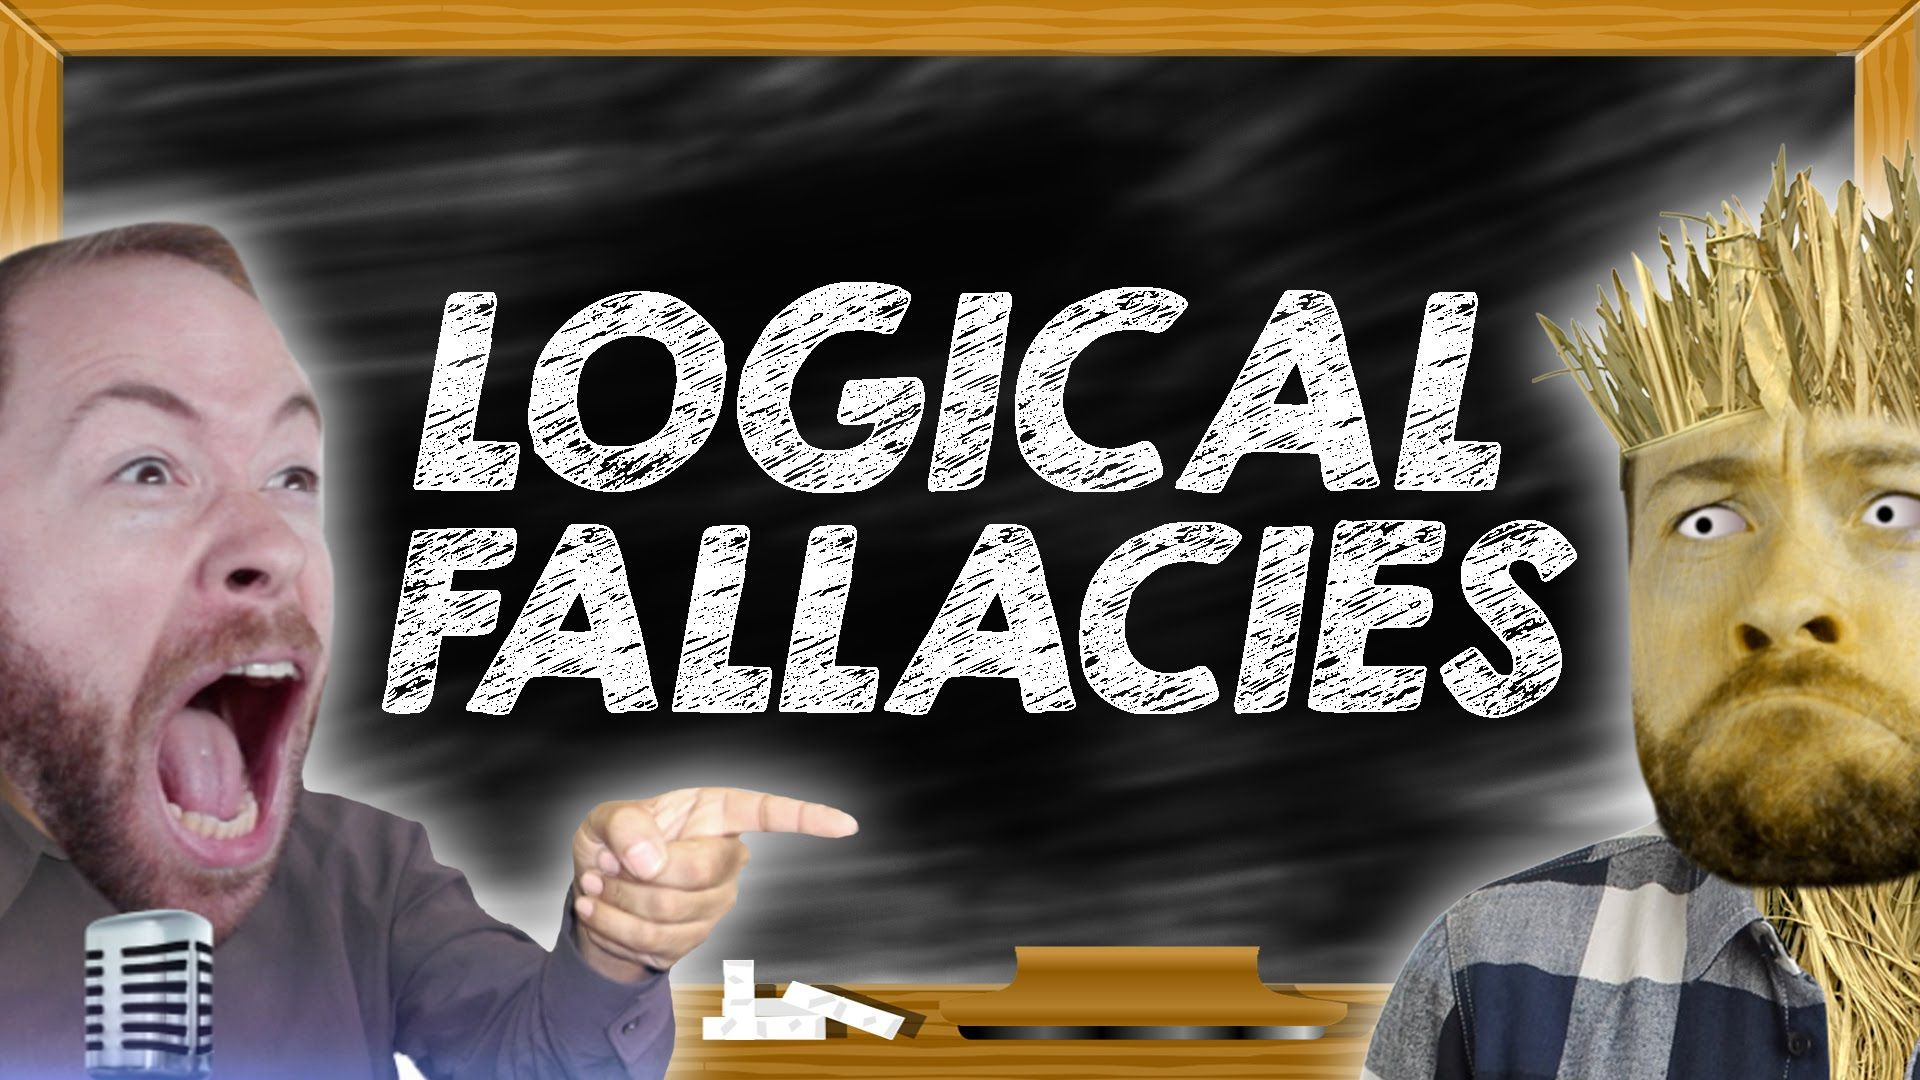 Pbs Idea Channel Explains Five Fallacies And Discusses How